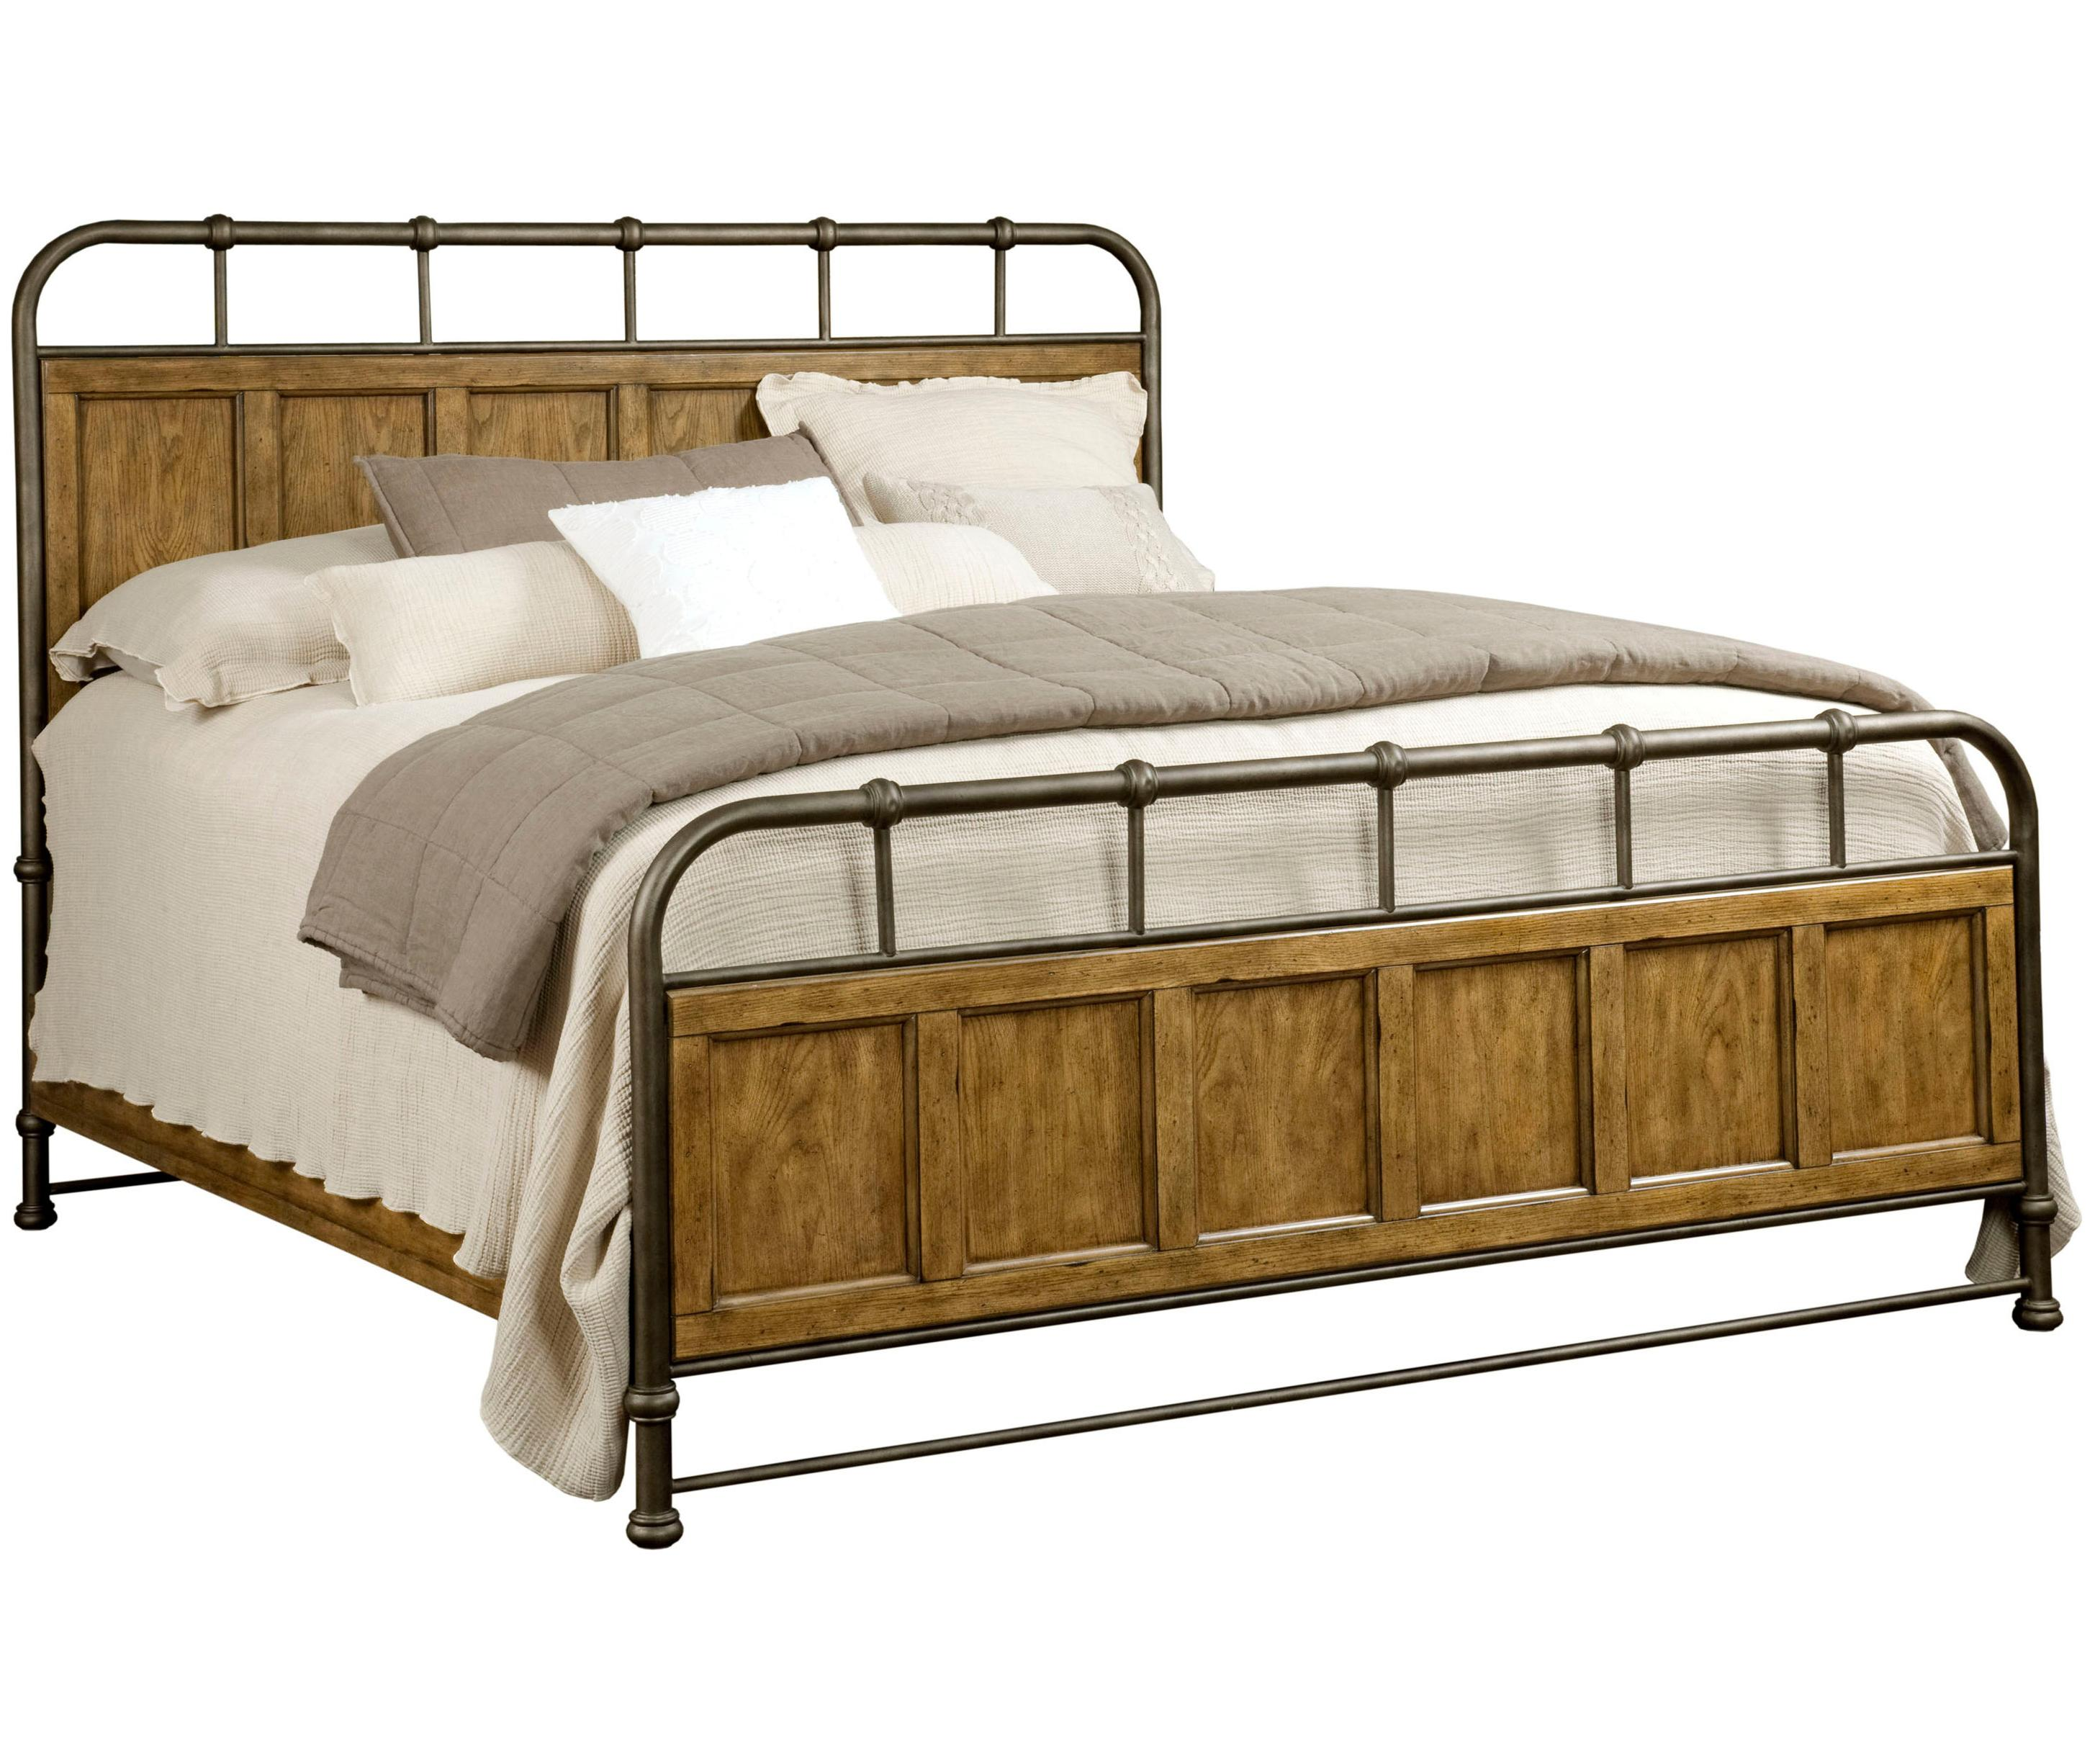 Broyhill Furniture New Vintage Queen Bedstead Bed - Item Number: 4808-250+51+450